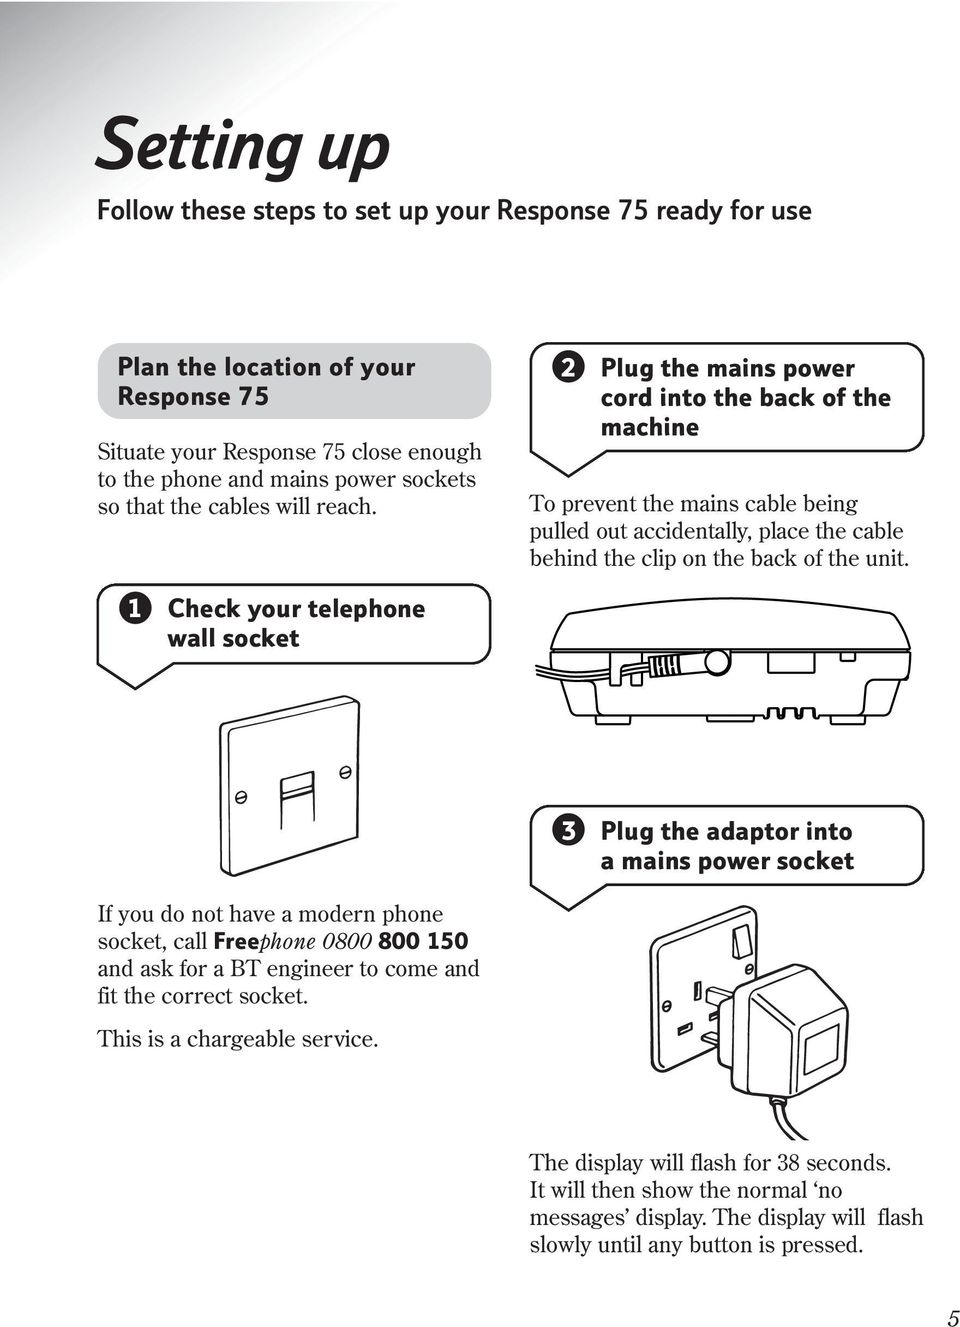 1 Check your telephone wall socket 3 Plug the adaptor into a mains power socket If you do not have a modern phone socket, call Freephone 0800 800 150 and ask for a BT engineer to come and fit